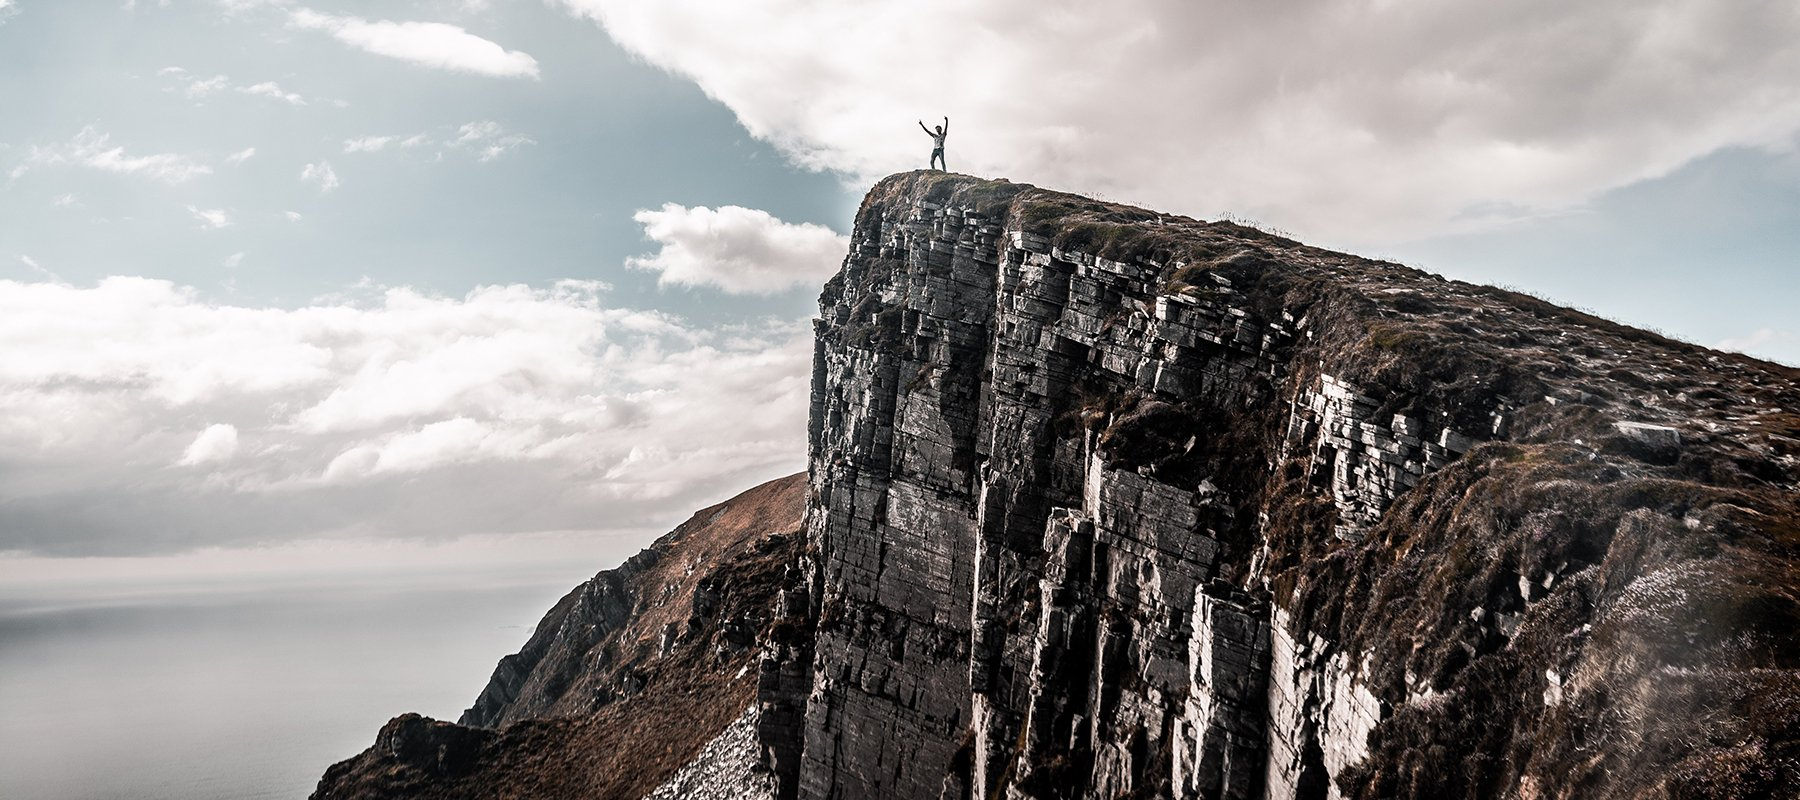 Heroic Fundraising Featured Image_A Person Standing on Top of a Mountain